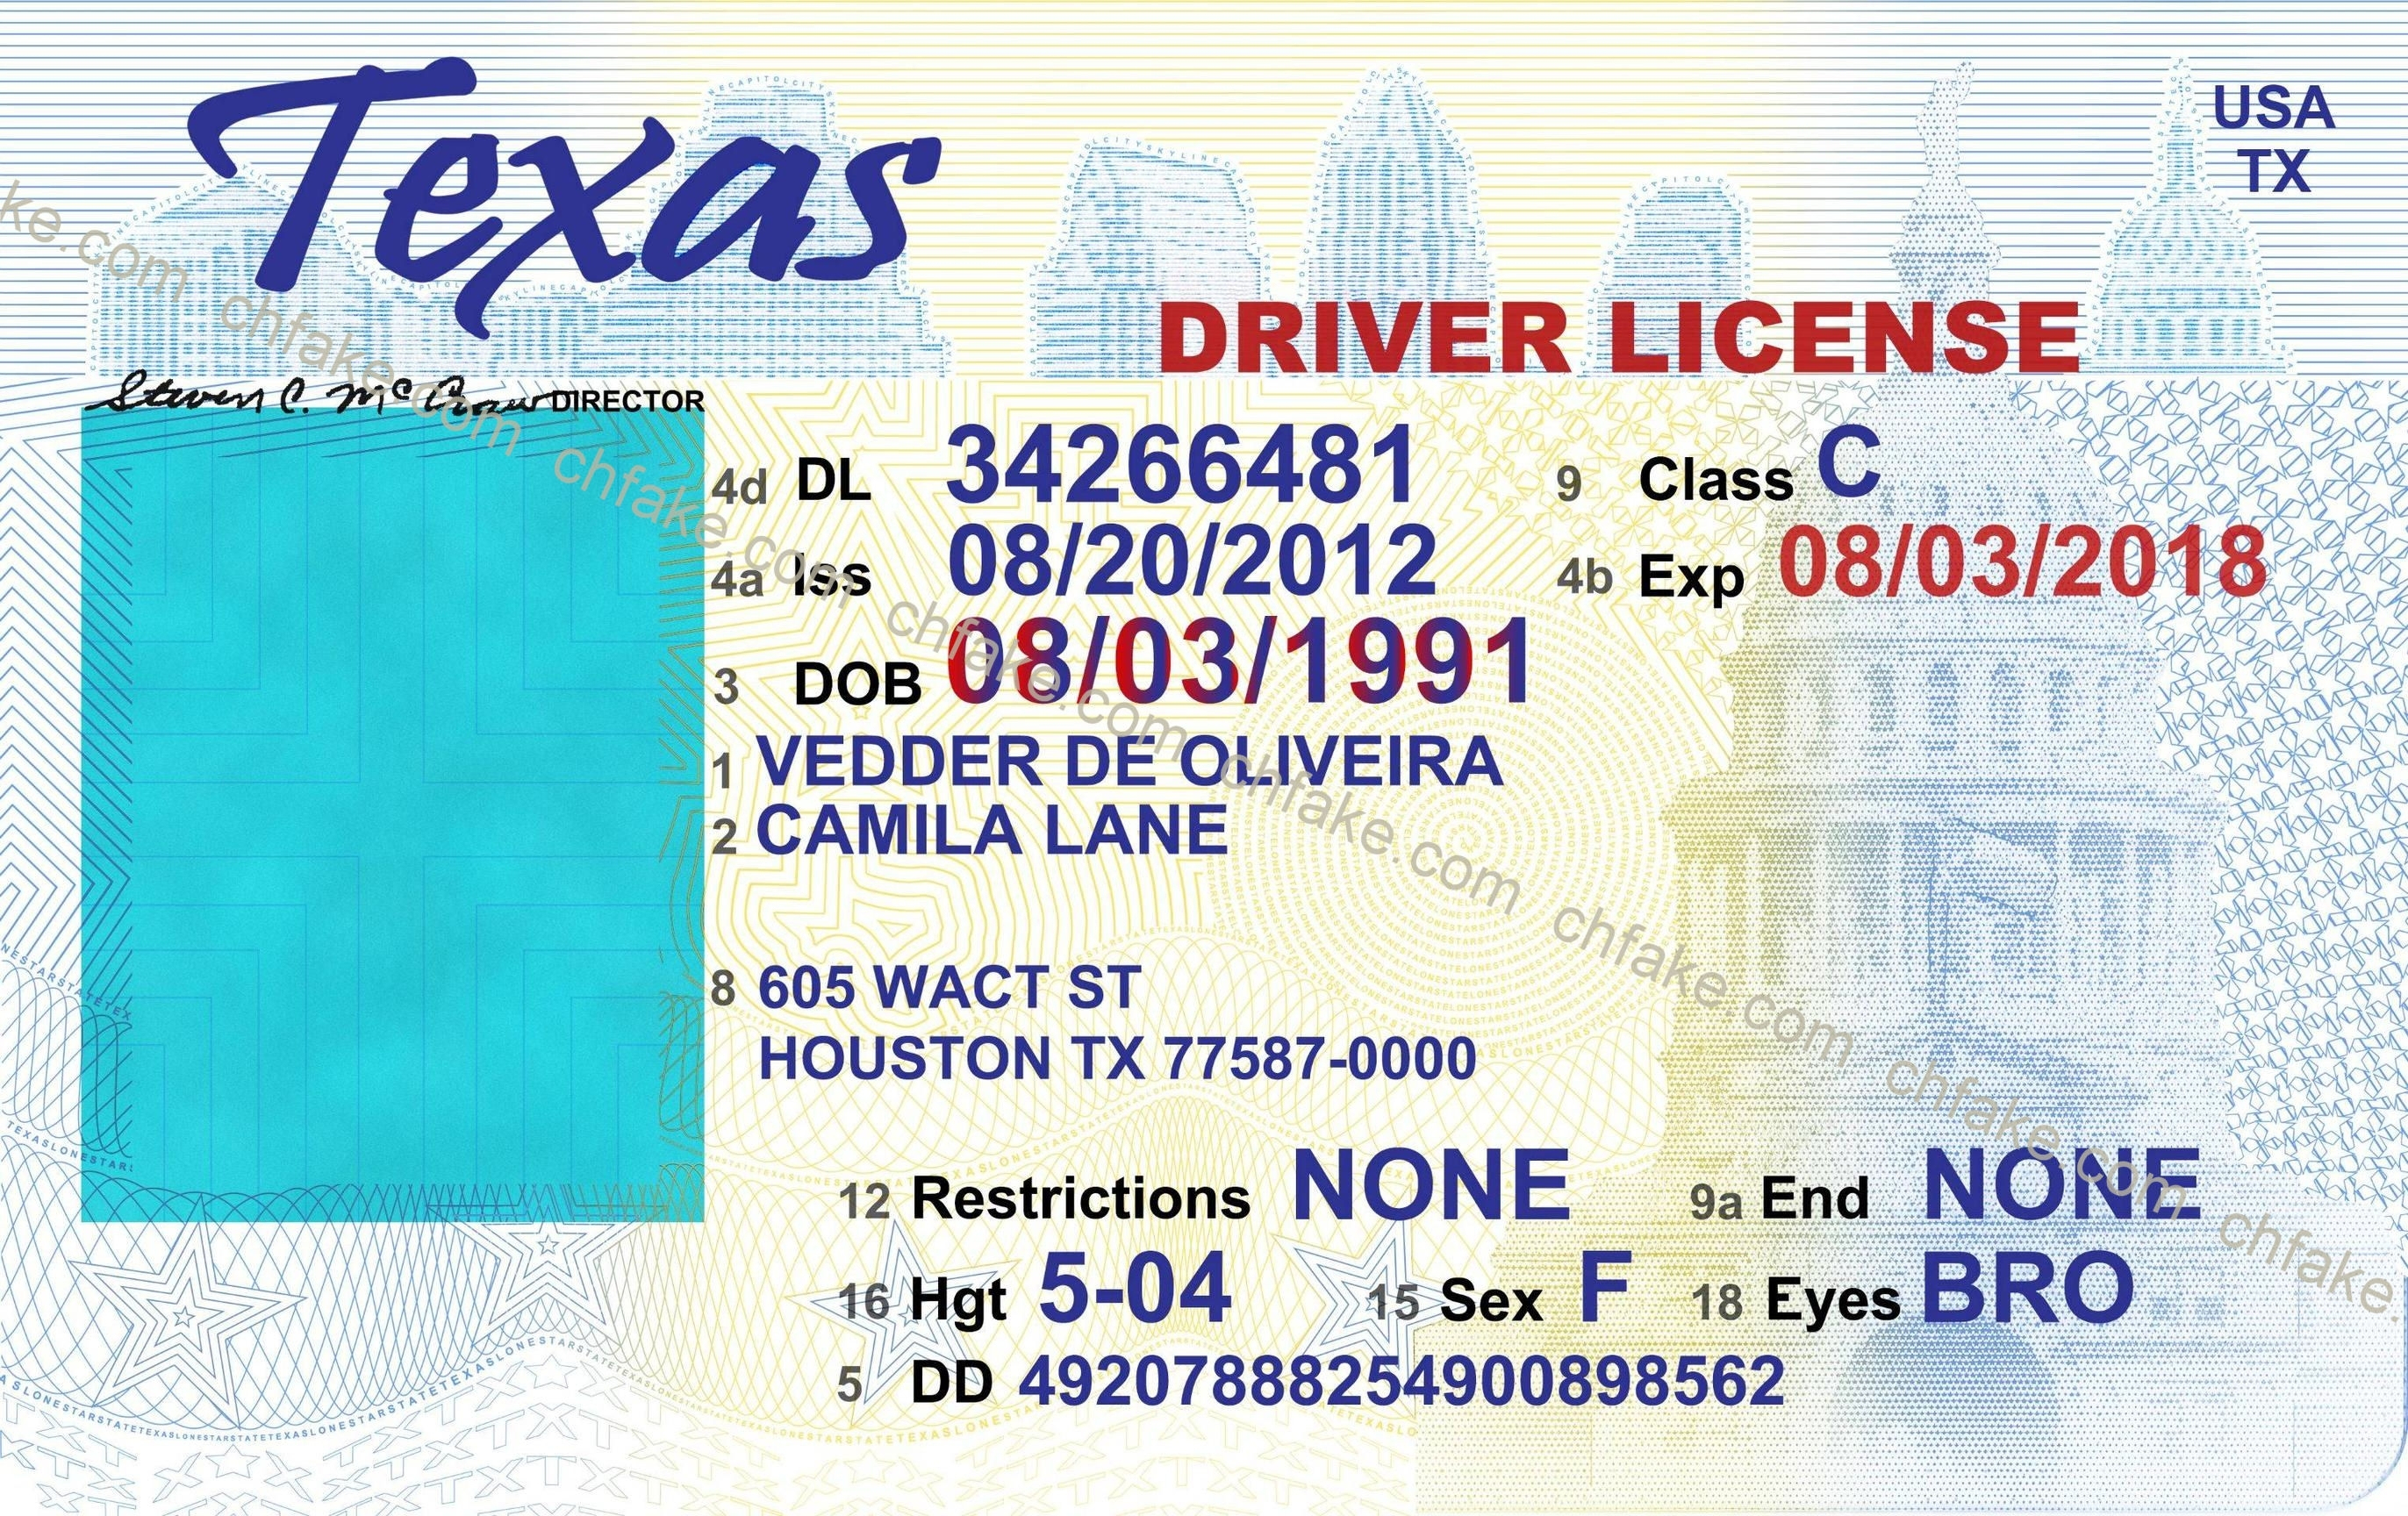 Texas Drivers License Template - Beepmunk - Free Printable Fake Drivers License